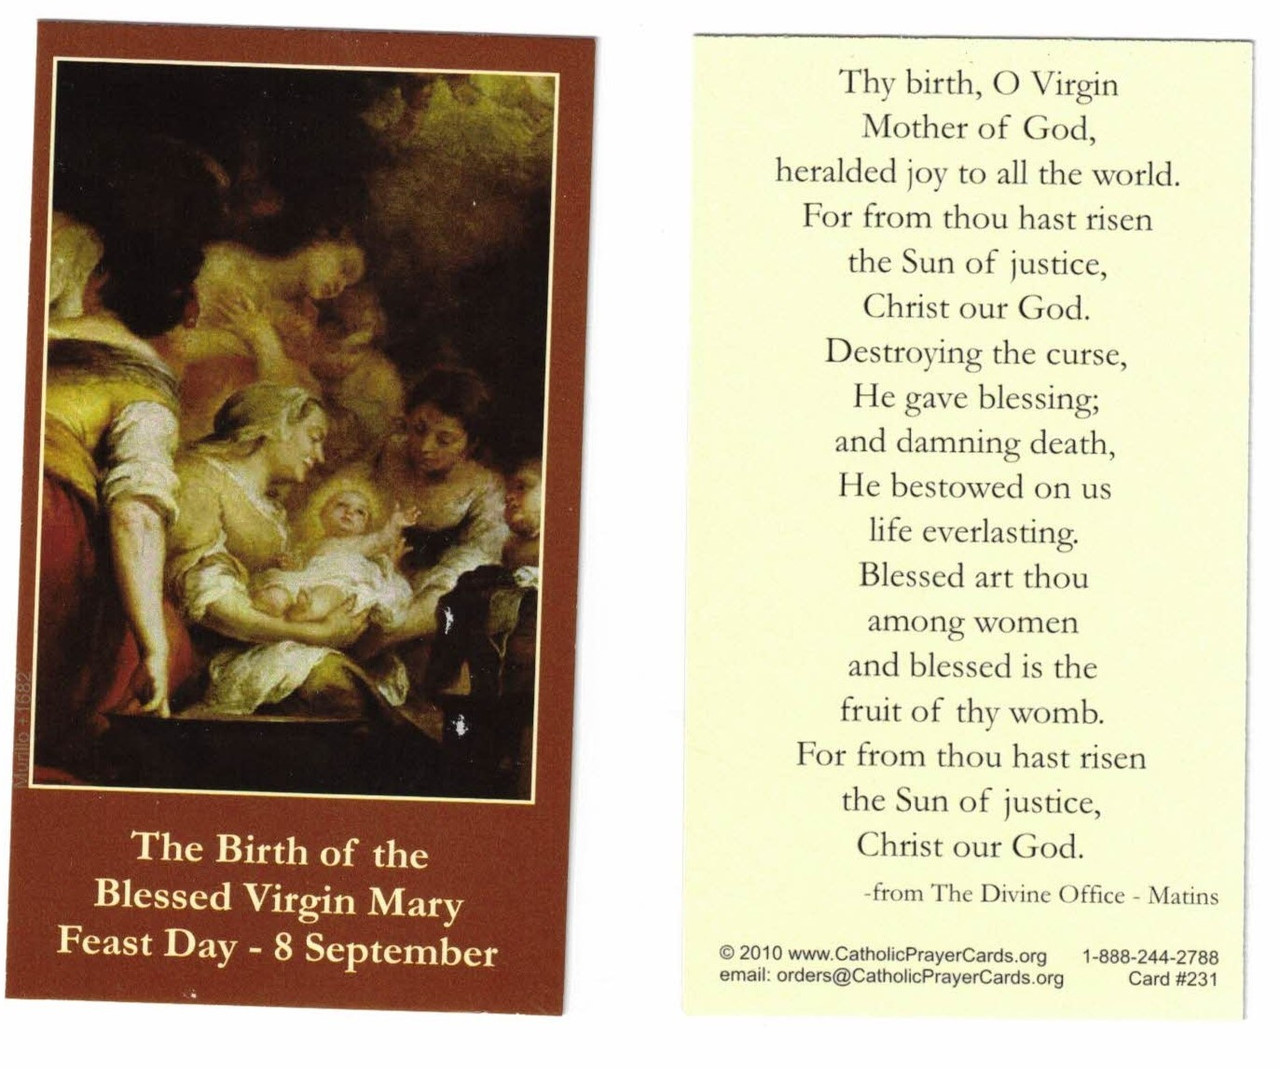 The Birth Nativity of the Blessed Virgin Mary Prayer Card